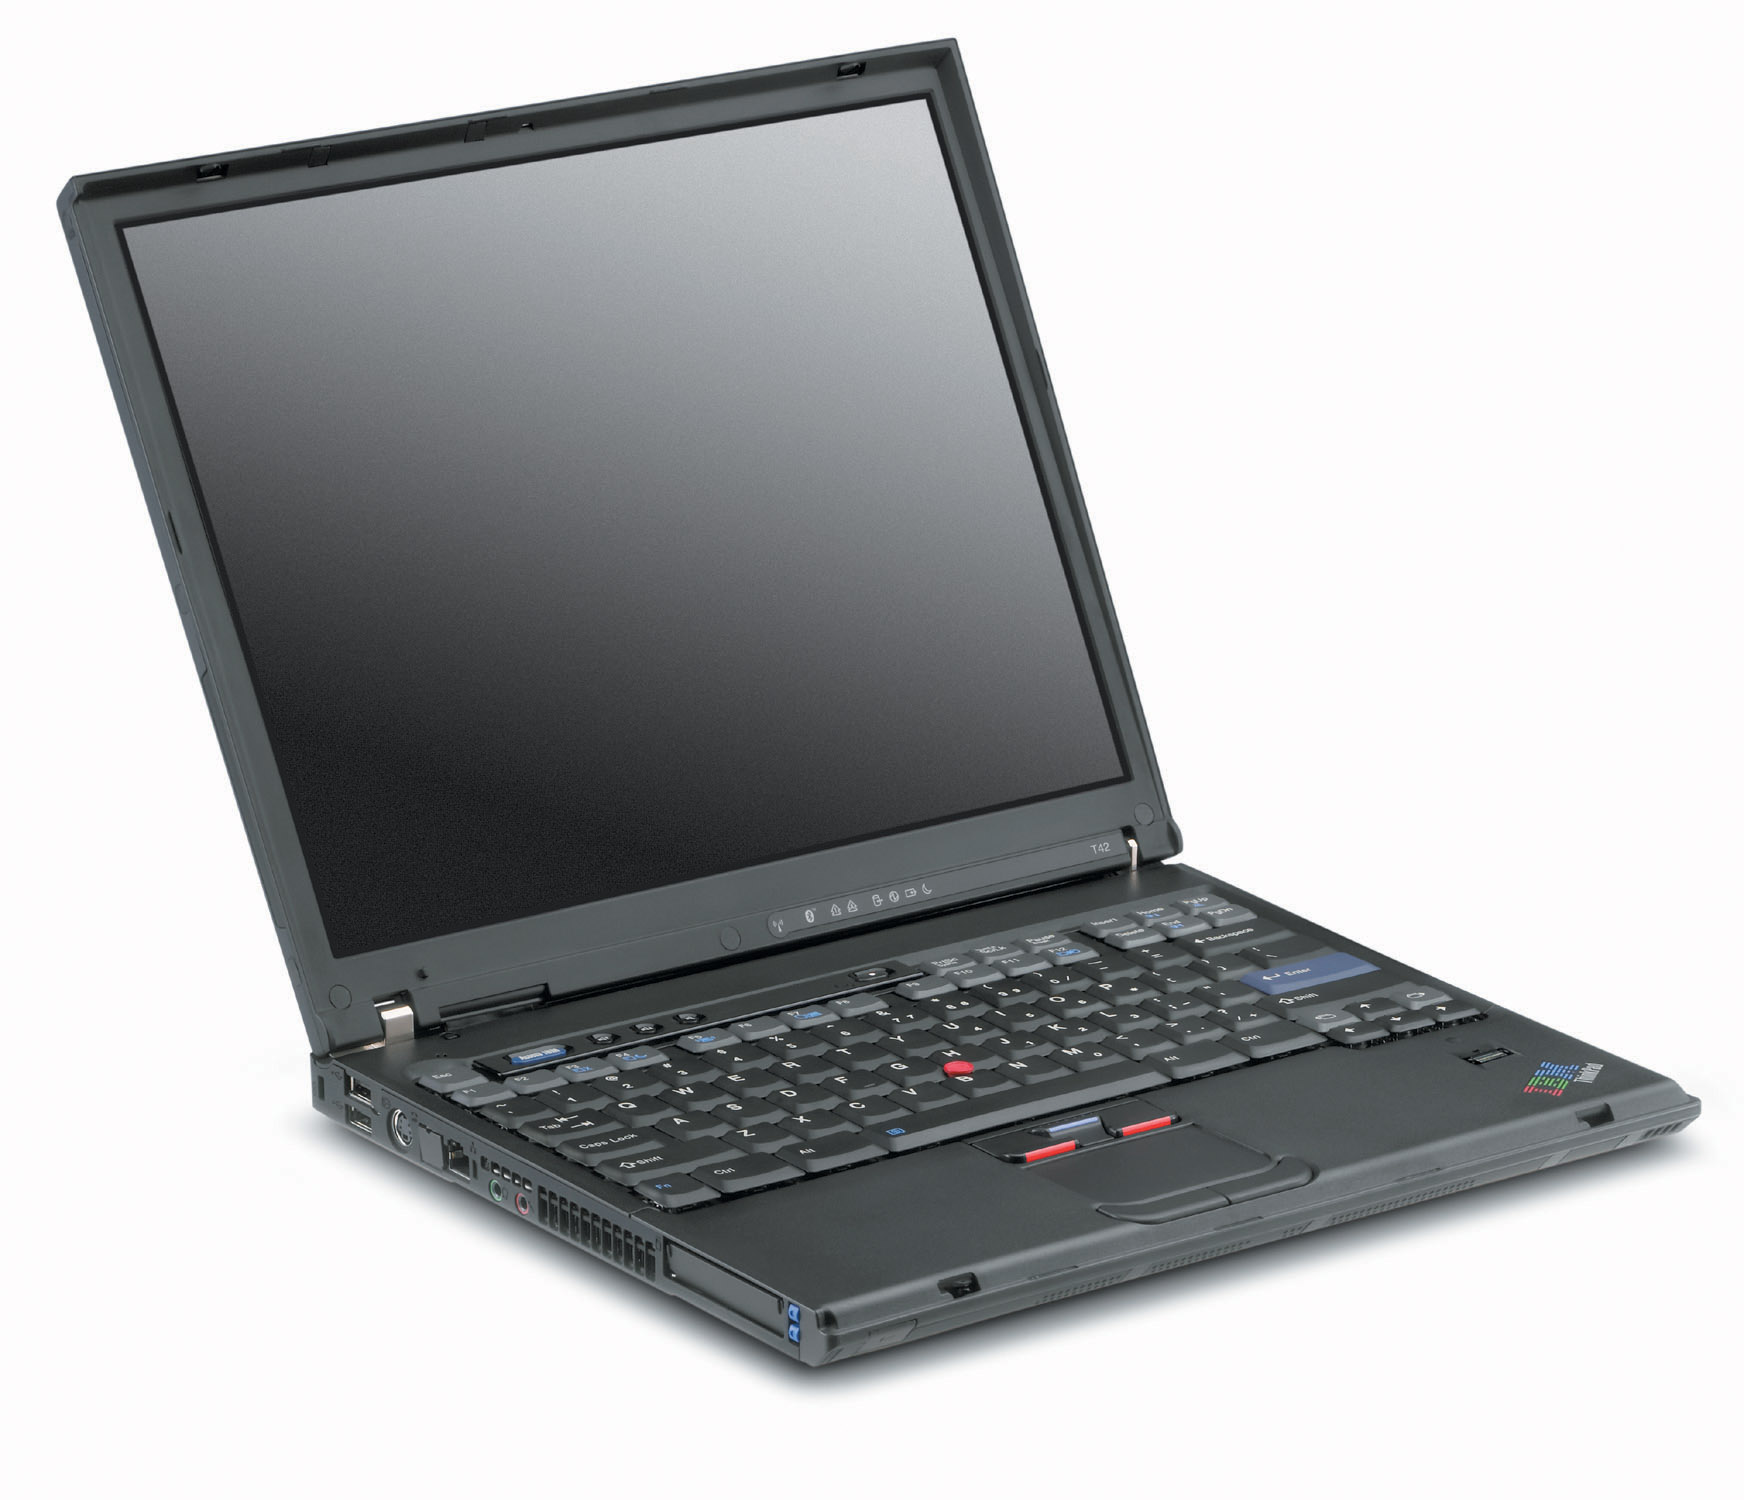 IBM ThinkPad T42 (15″ / Intel Centrino 1.6GHz / 40GB HDD / 1GB RAM) – The PC Room